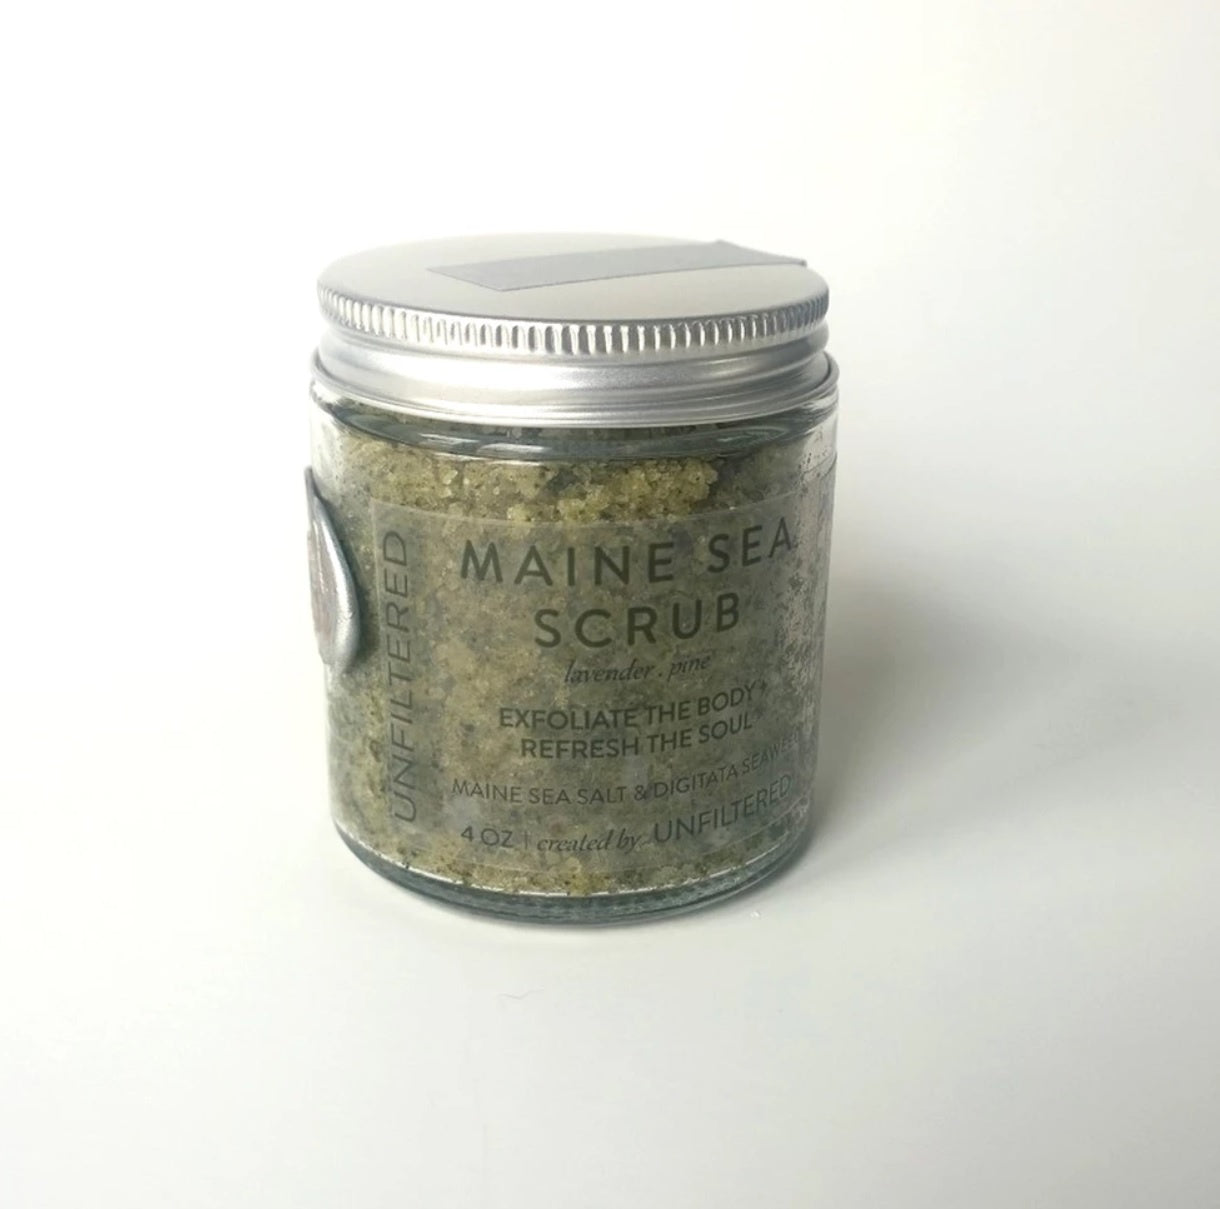 Maine Sea Scrub 4 oz